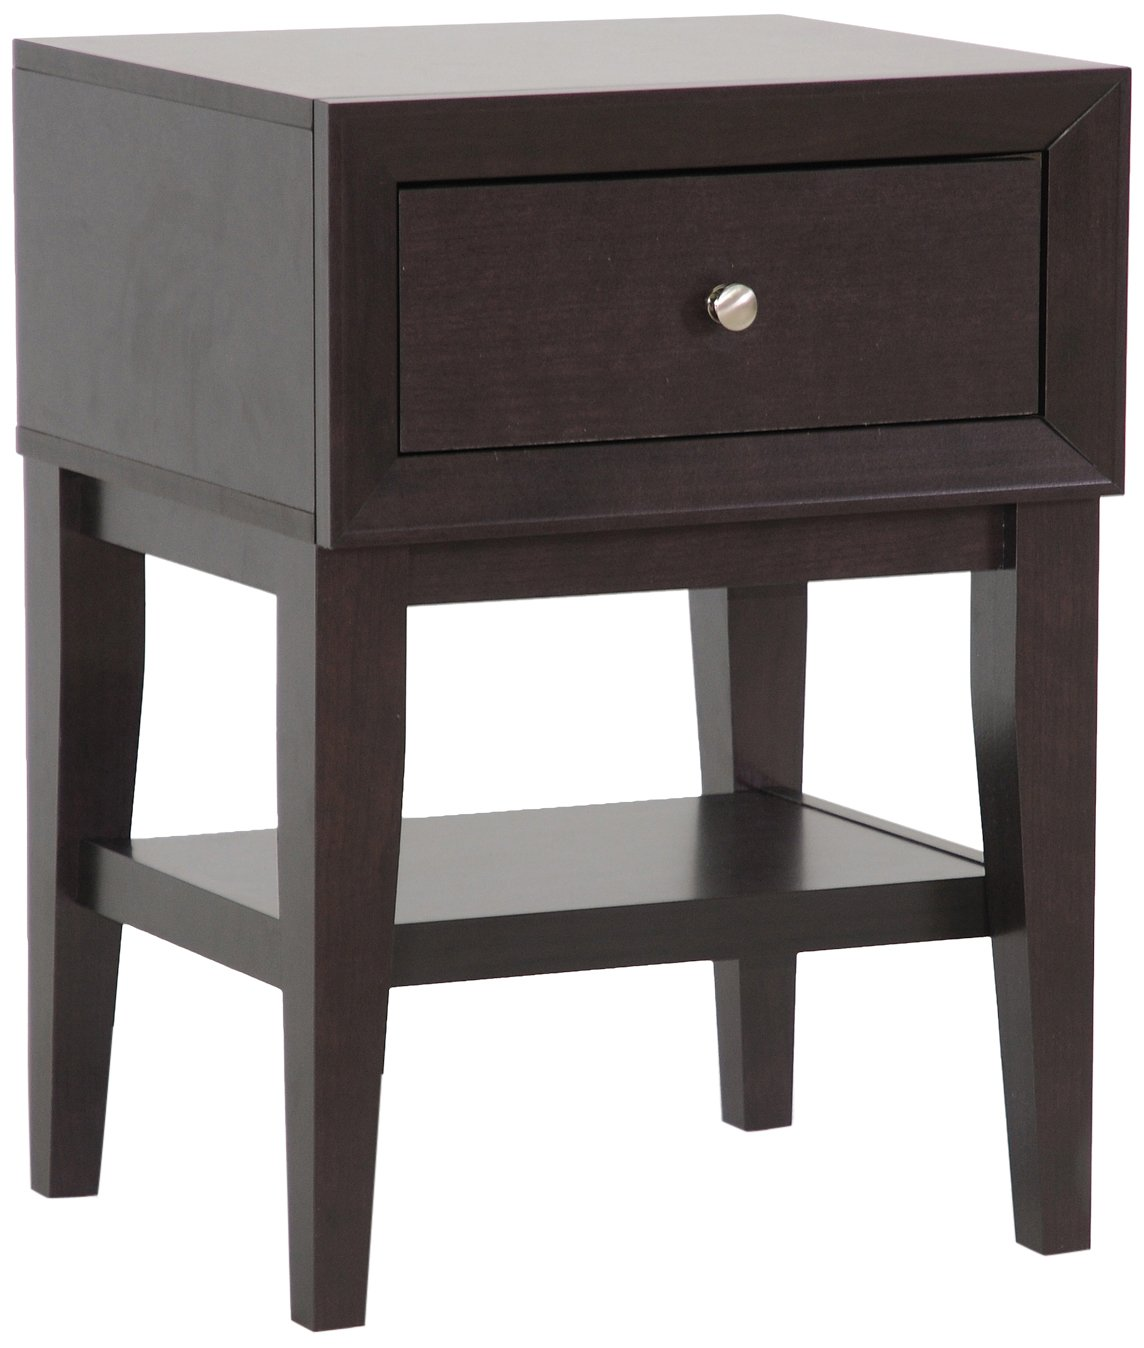 Baxton Studio Gaston Modern Accent Table and Nightstand, Brown Wholesale Interiors ST-007-AT